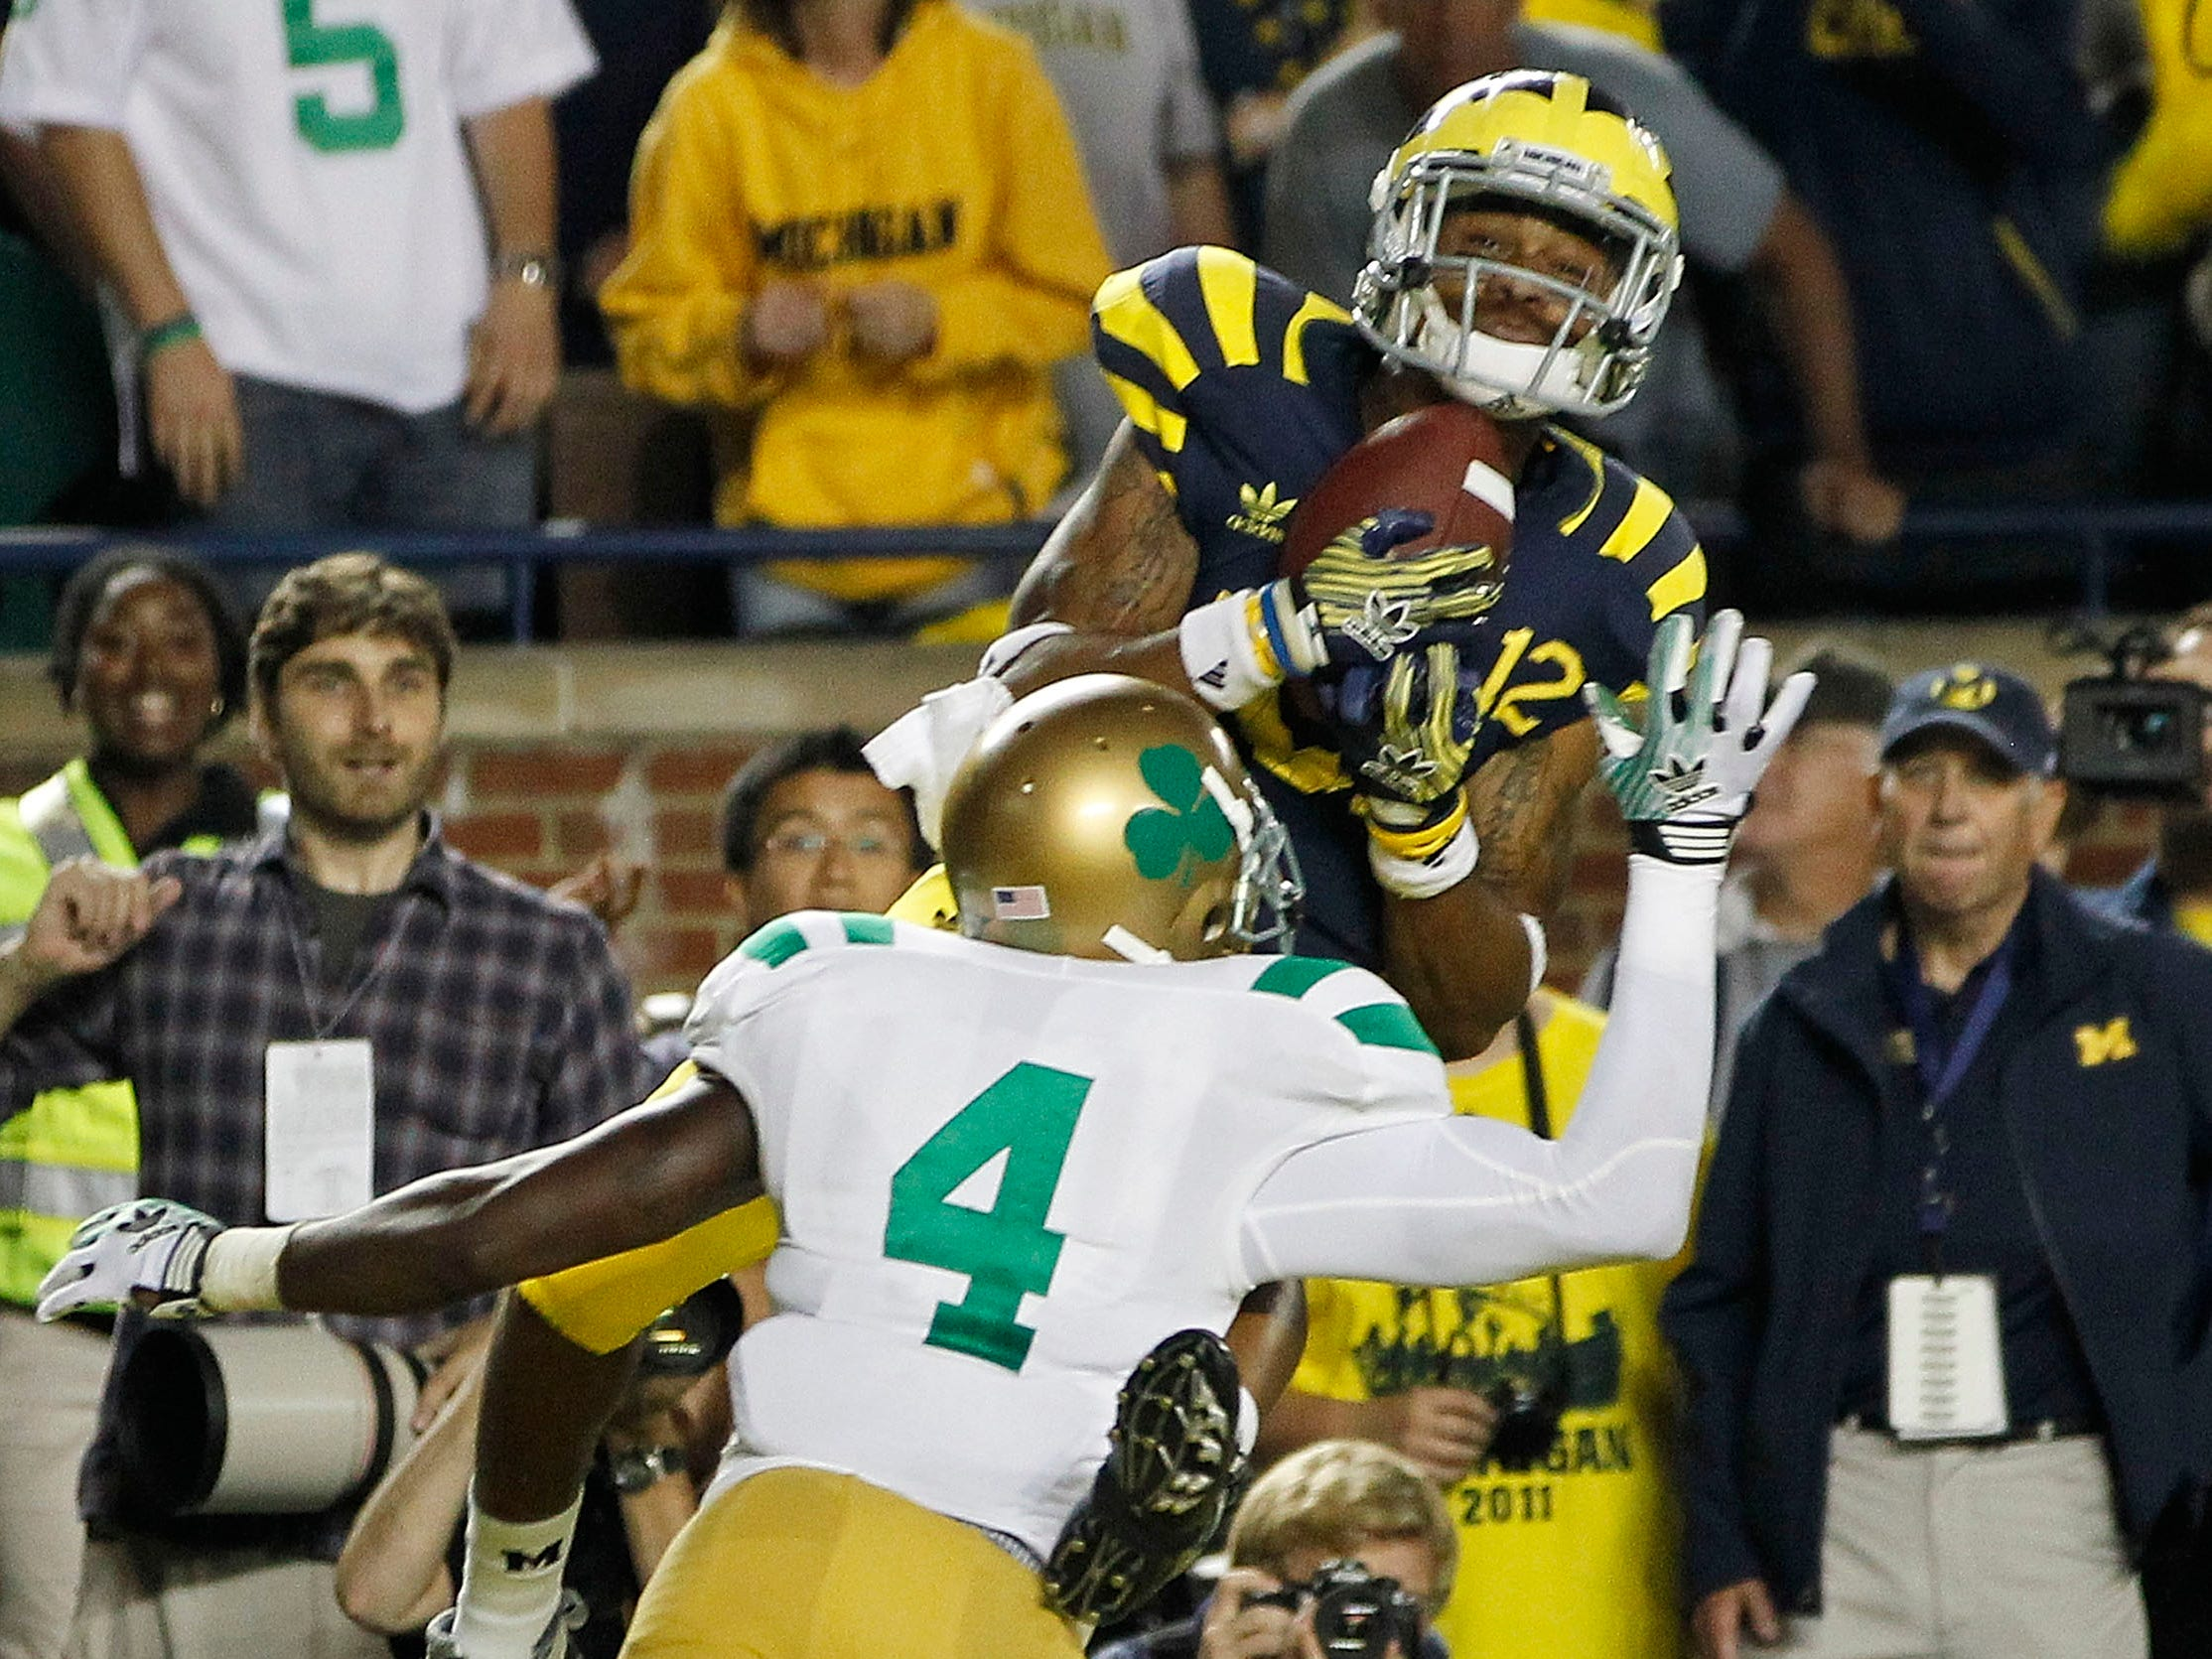 MICHIGAN-NOTRE DAME: They're Nos. 1 and 2, respectively, on the Division I FBS all-time wins list, and fittingly, they've had some fantastic football games over the years -- even though they don't play every year, and there often has been lengthy hiatuses in the rivalry.